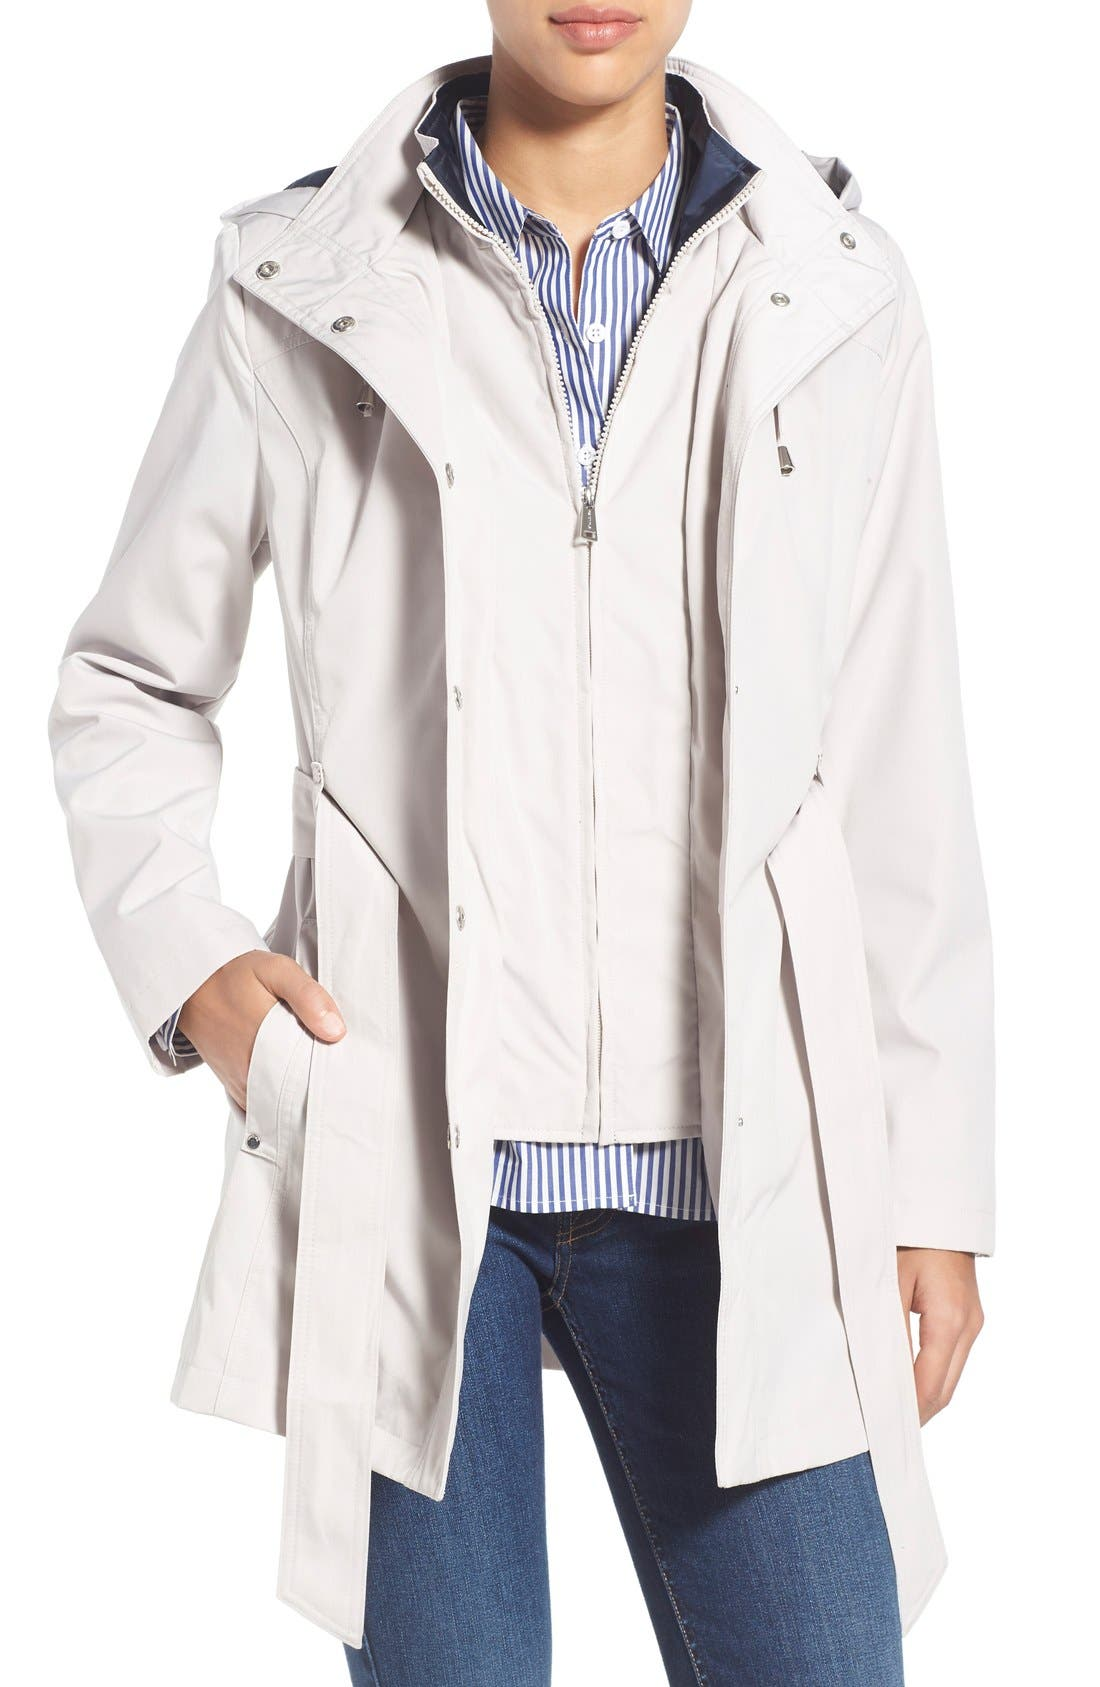 Alternate Image 1 Selected - Nautica Belted Raincoat with Inset Bib